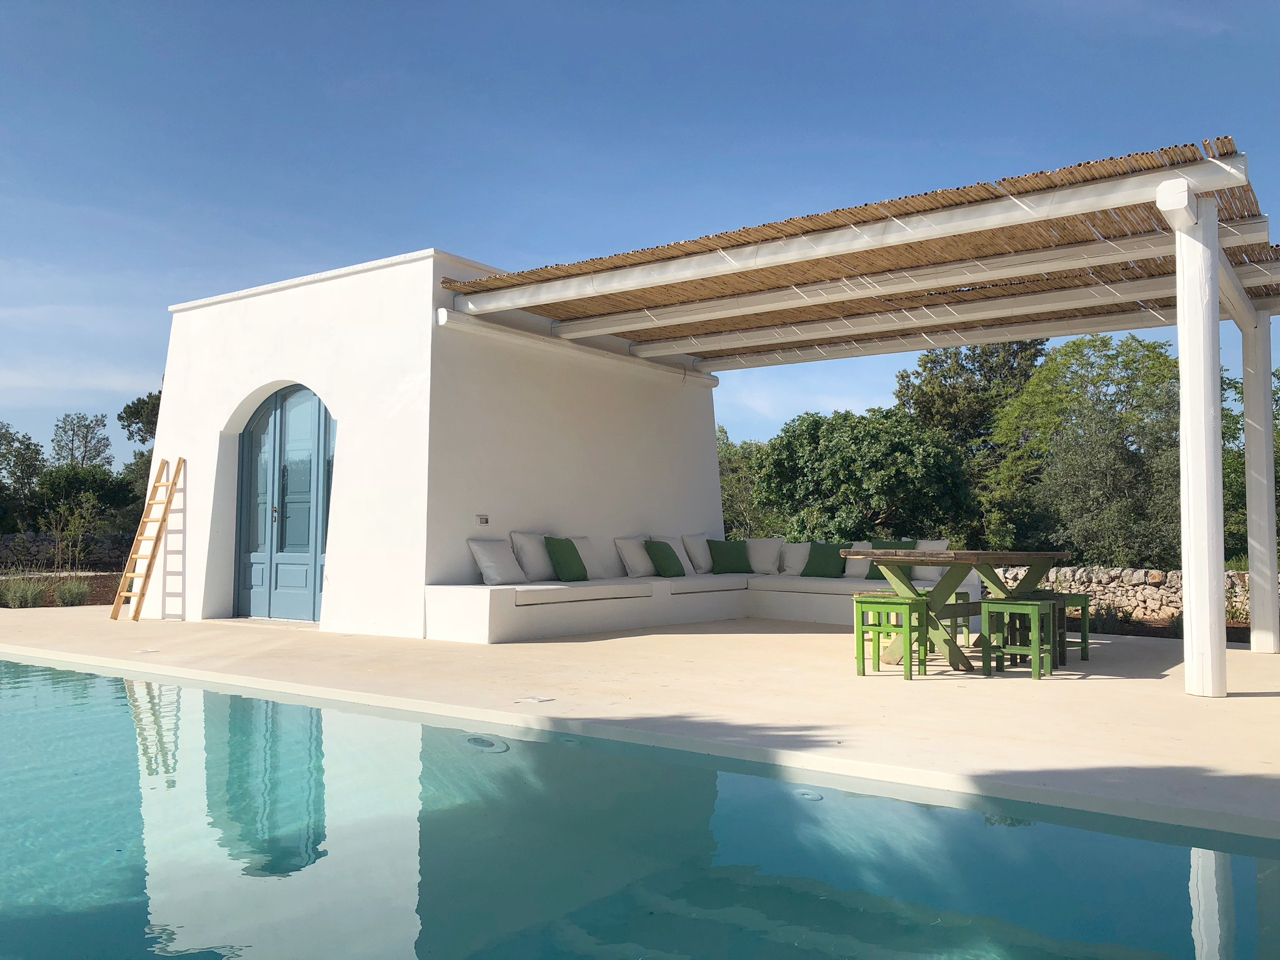 Trullo M, a villa rental with pool in Puglia with beautiful pared down decor